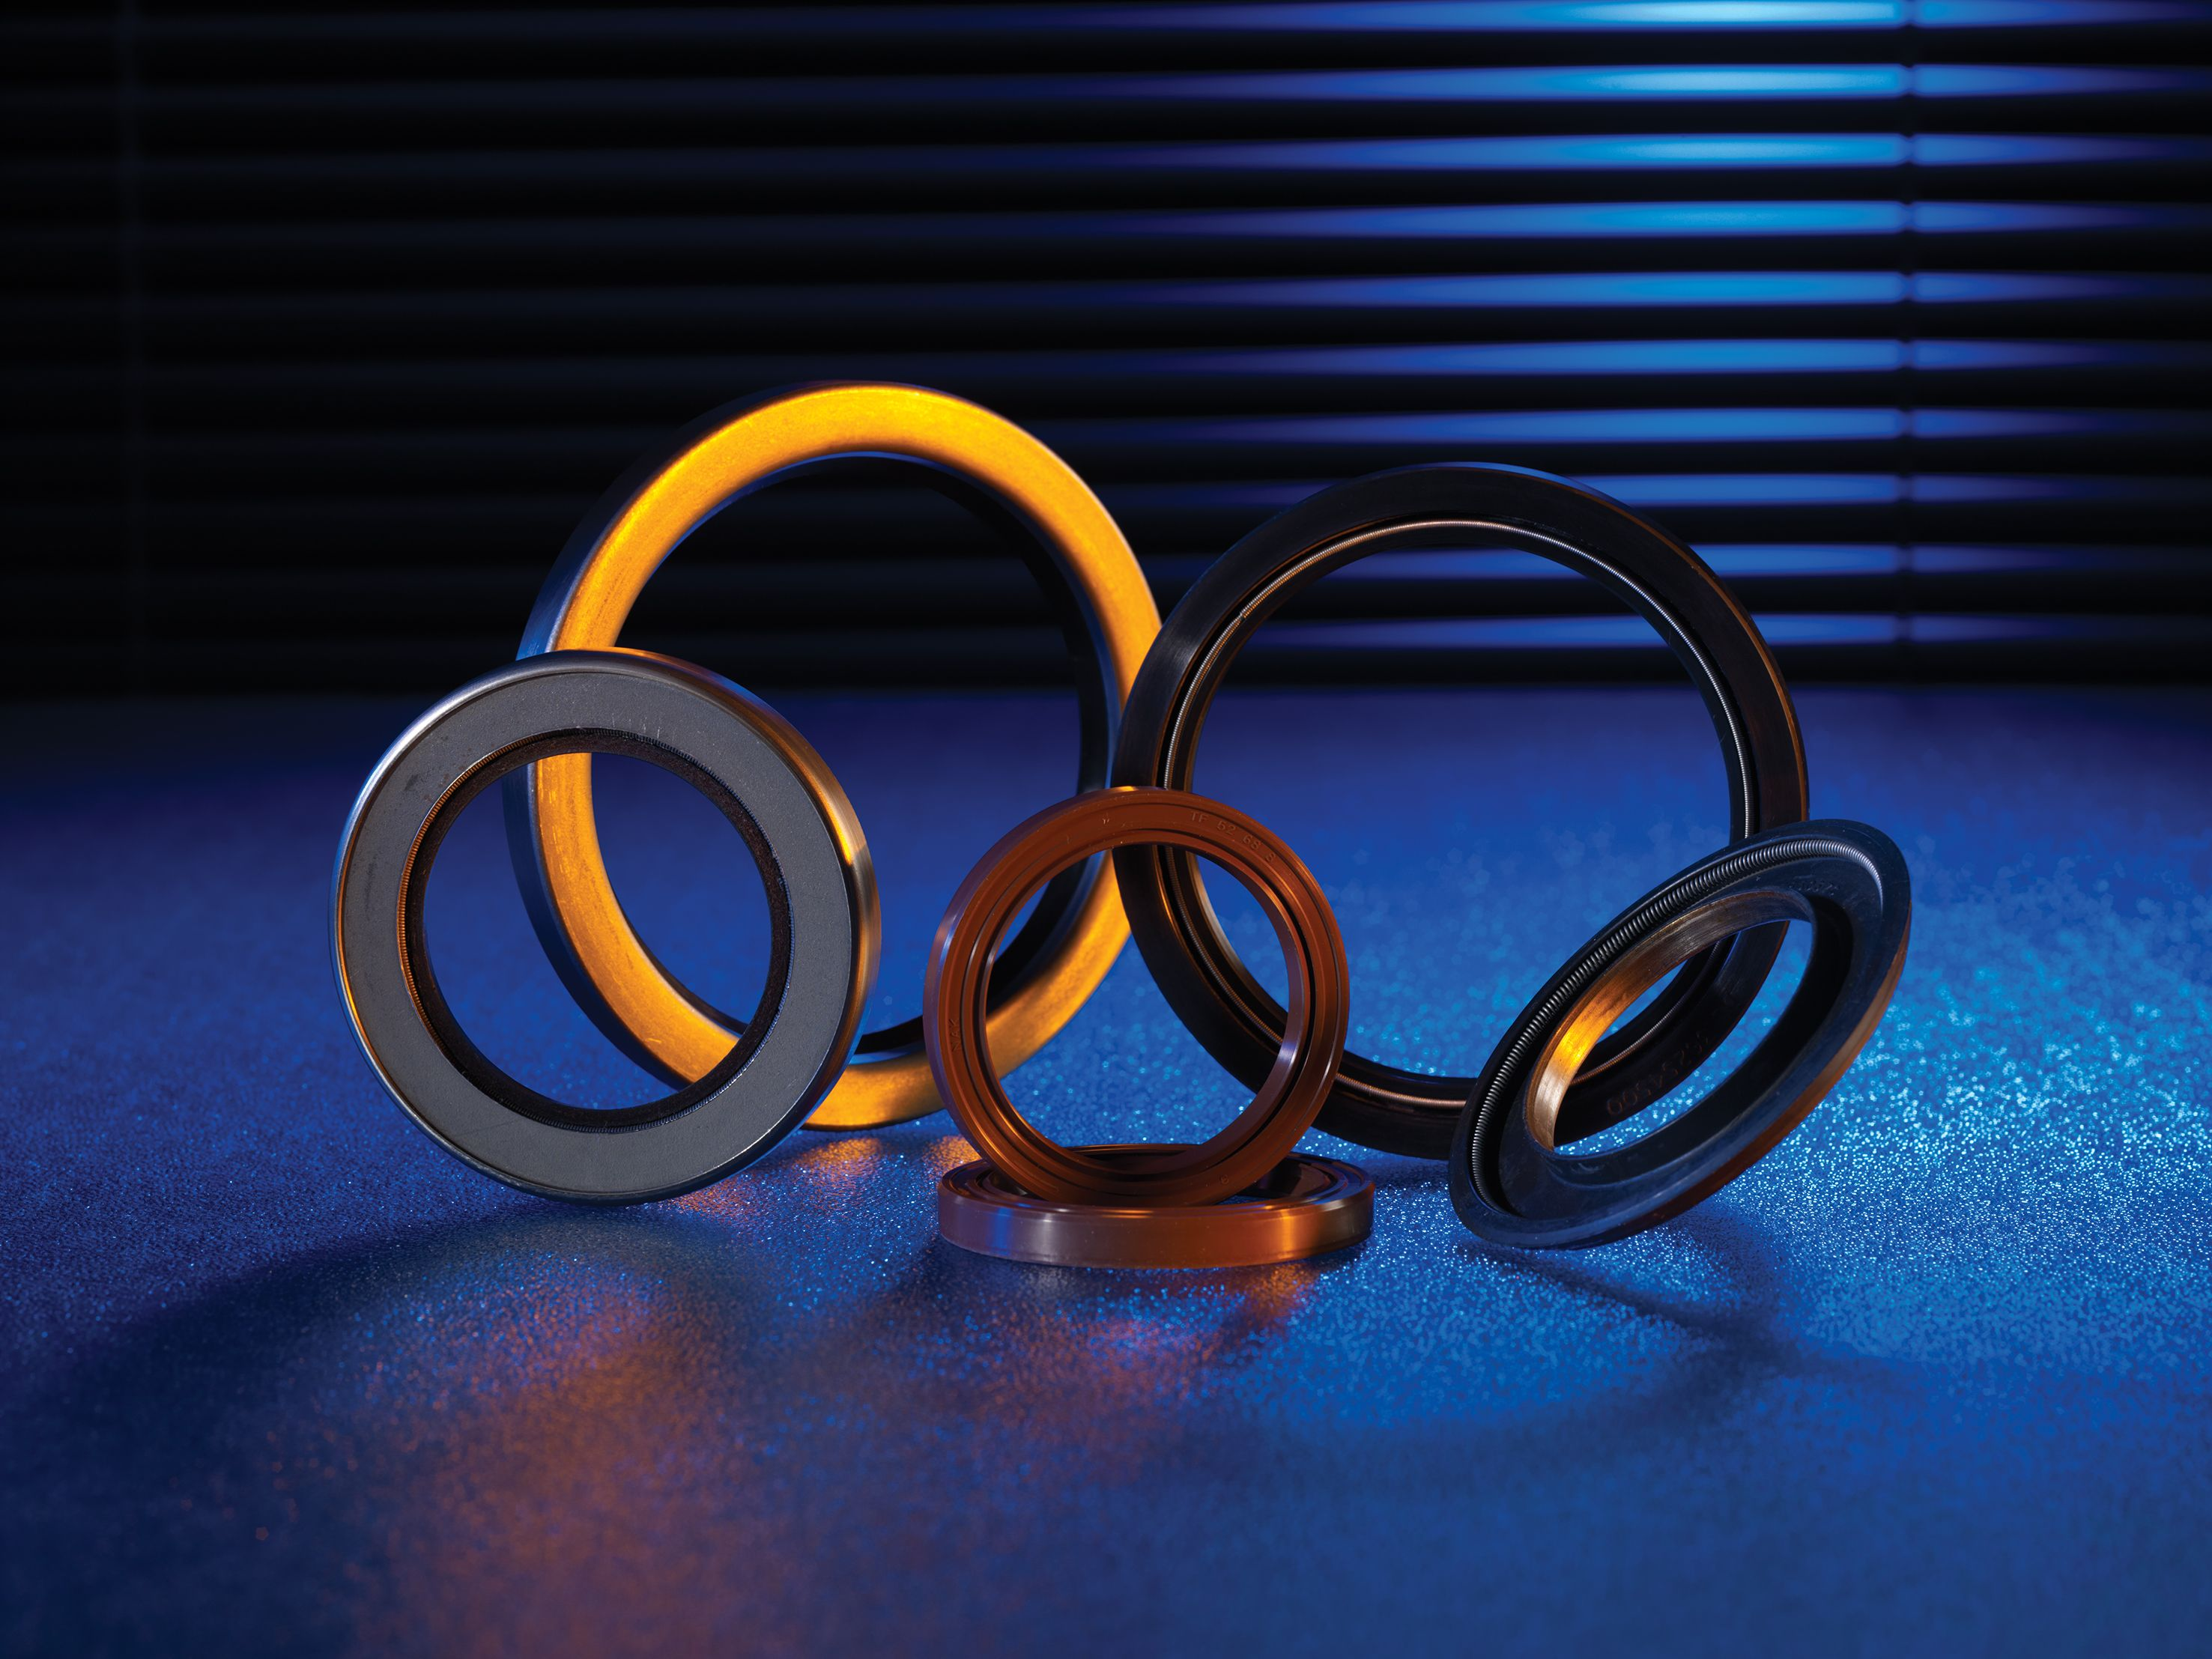 Rotary Shaft & Oil Seals SIZES: Over 9000 sizes available